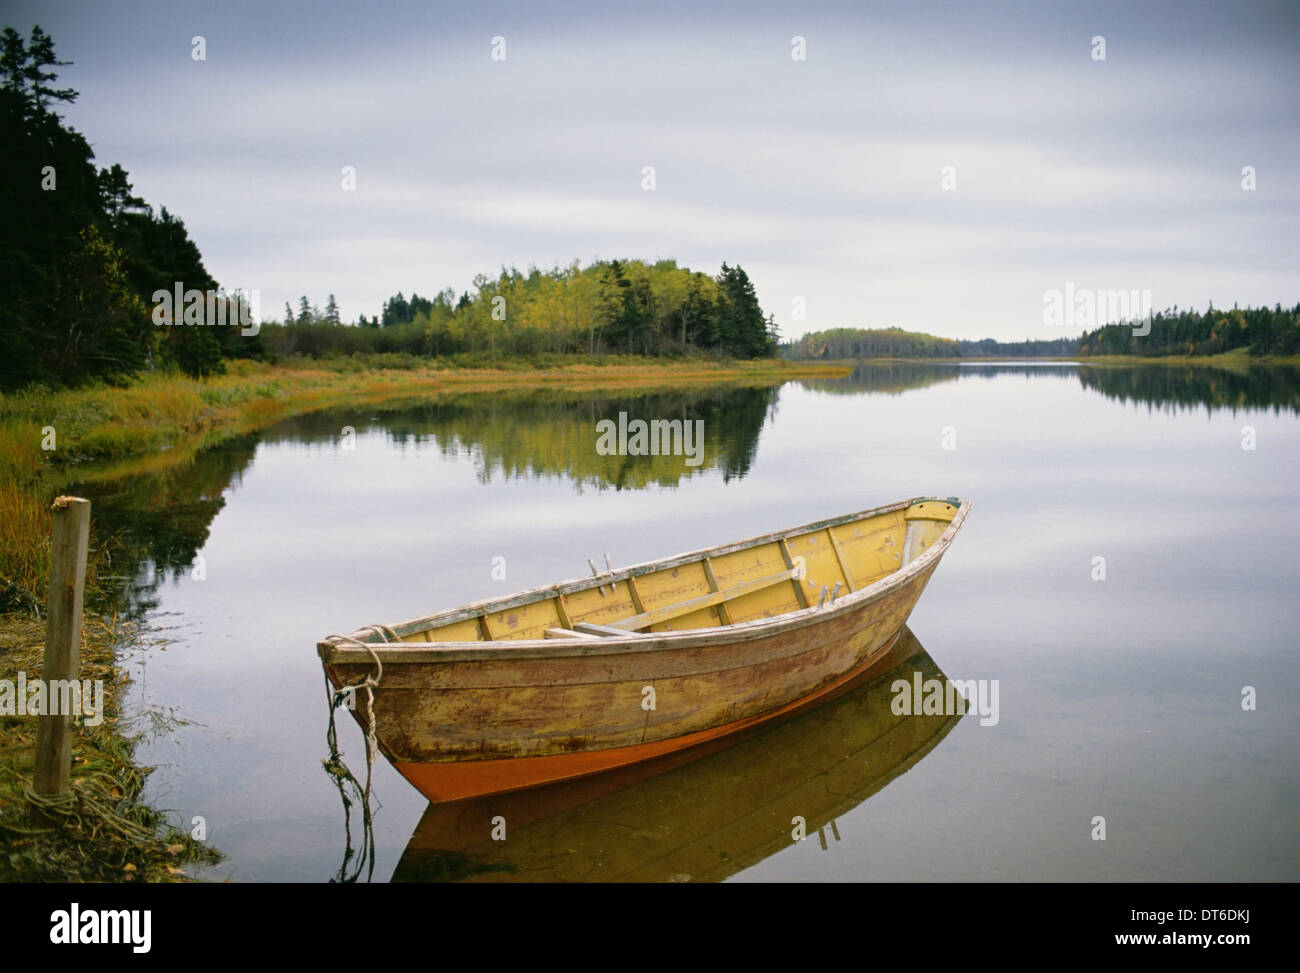 A small wooden dory or rowing boat moored on flat calm water, in Savage harbour on Prince Edward Island in Canada. - Stock Image